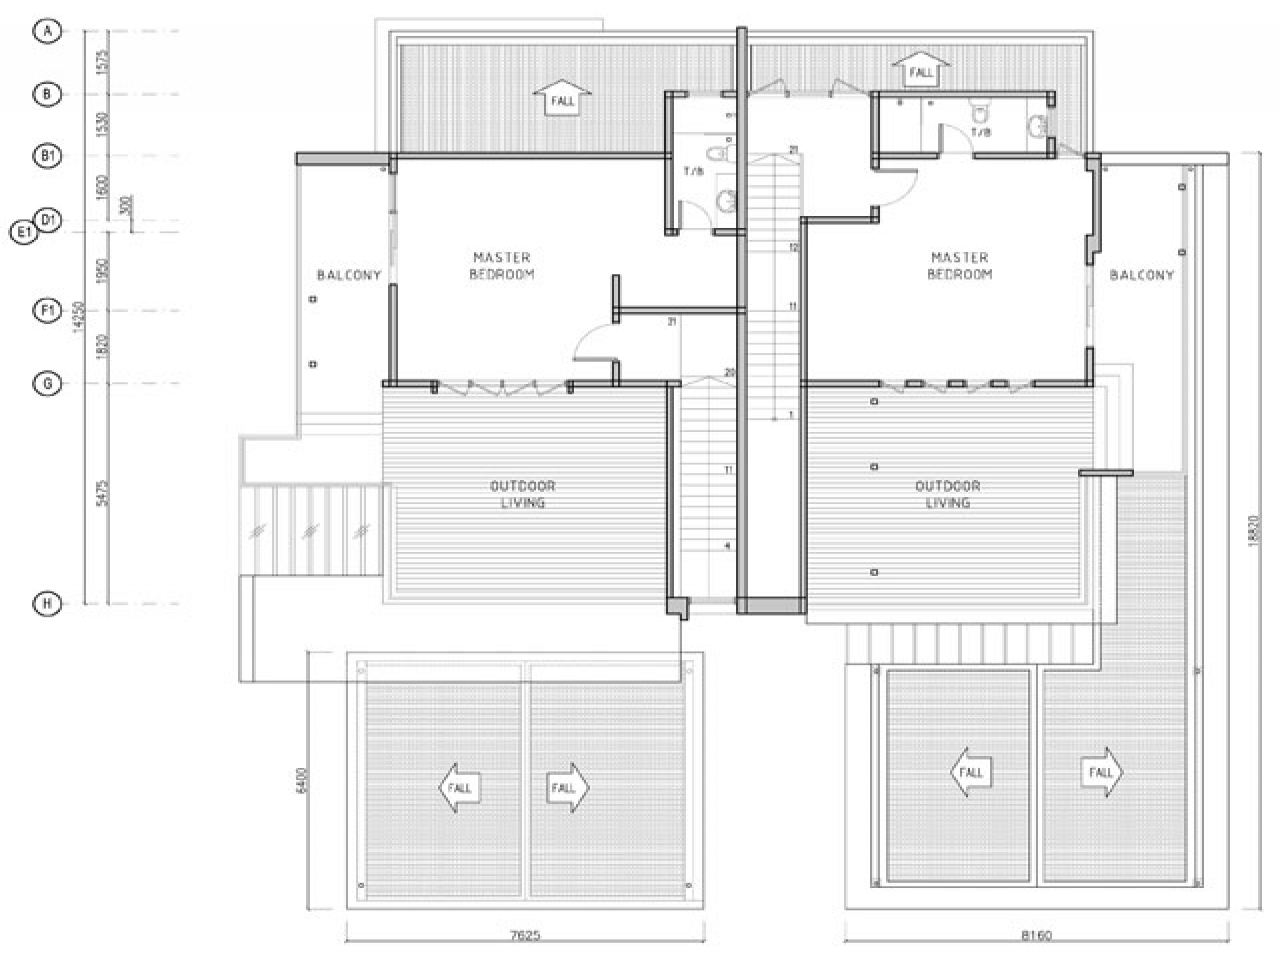 One and a half storey house plans one and a half hyphen 1 for One and a half storey house plans